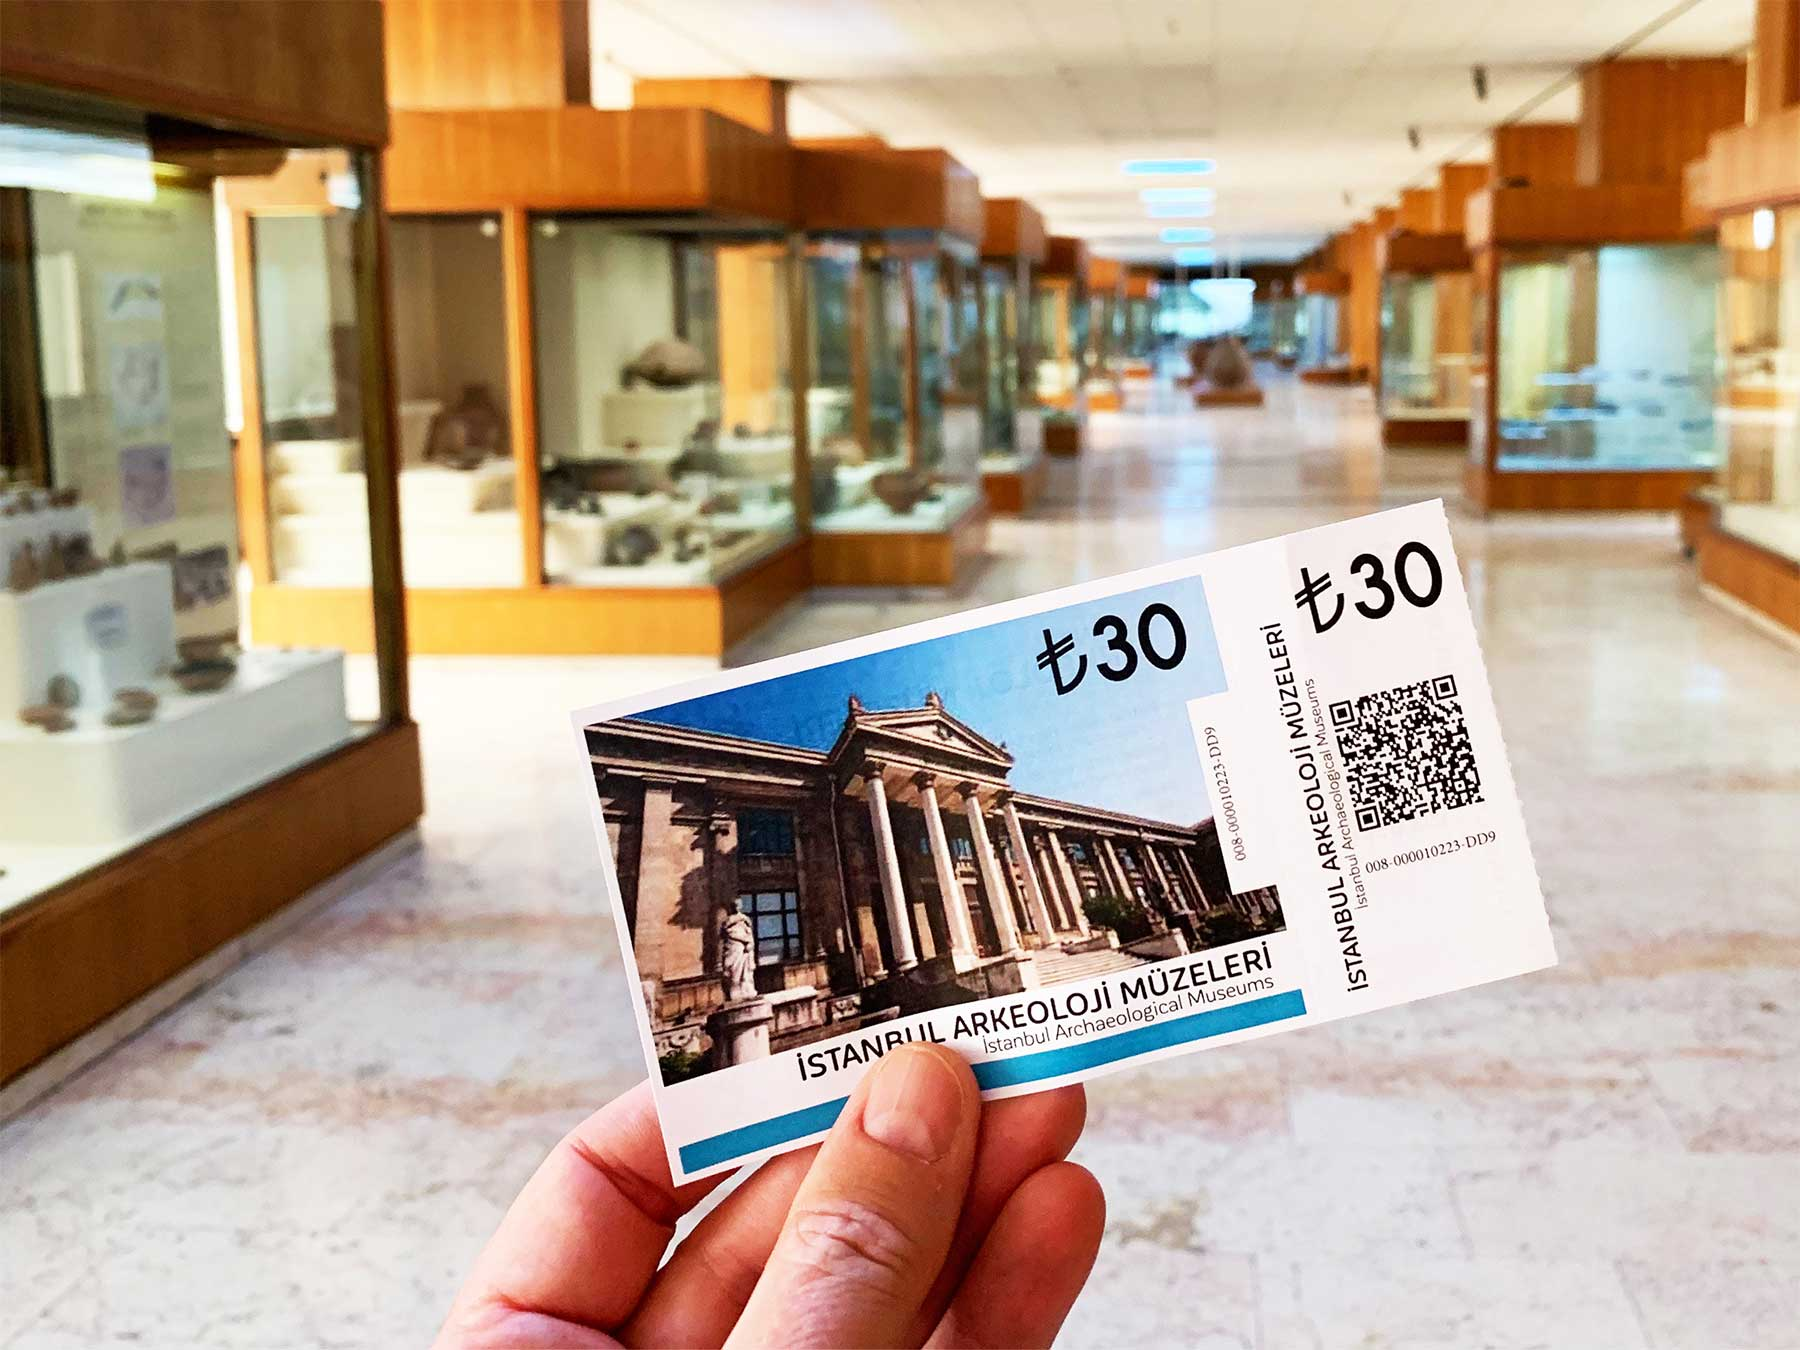 Istanbul Arkeoloji Muzeleri ticket | Istanbul Archaeological Museums ticket | Professor Steven Andrew Martin | Turkey research 2019